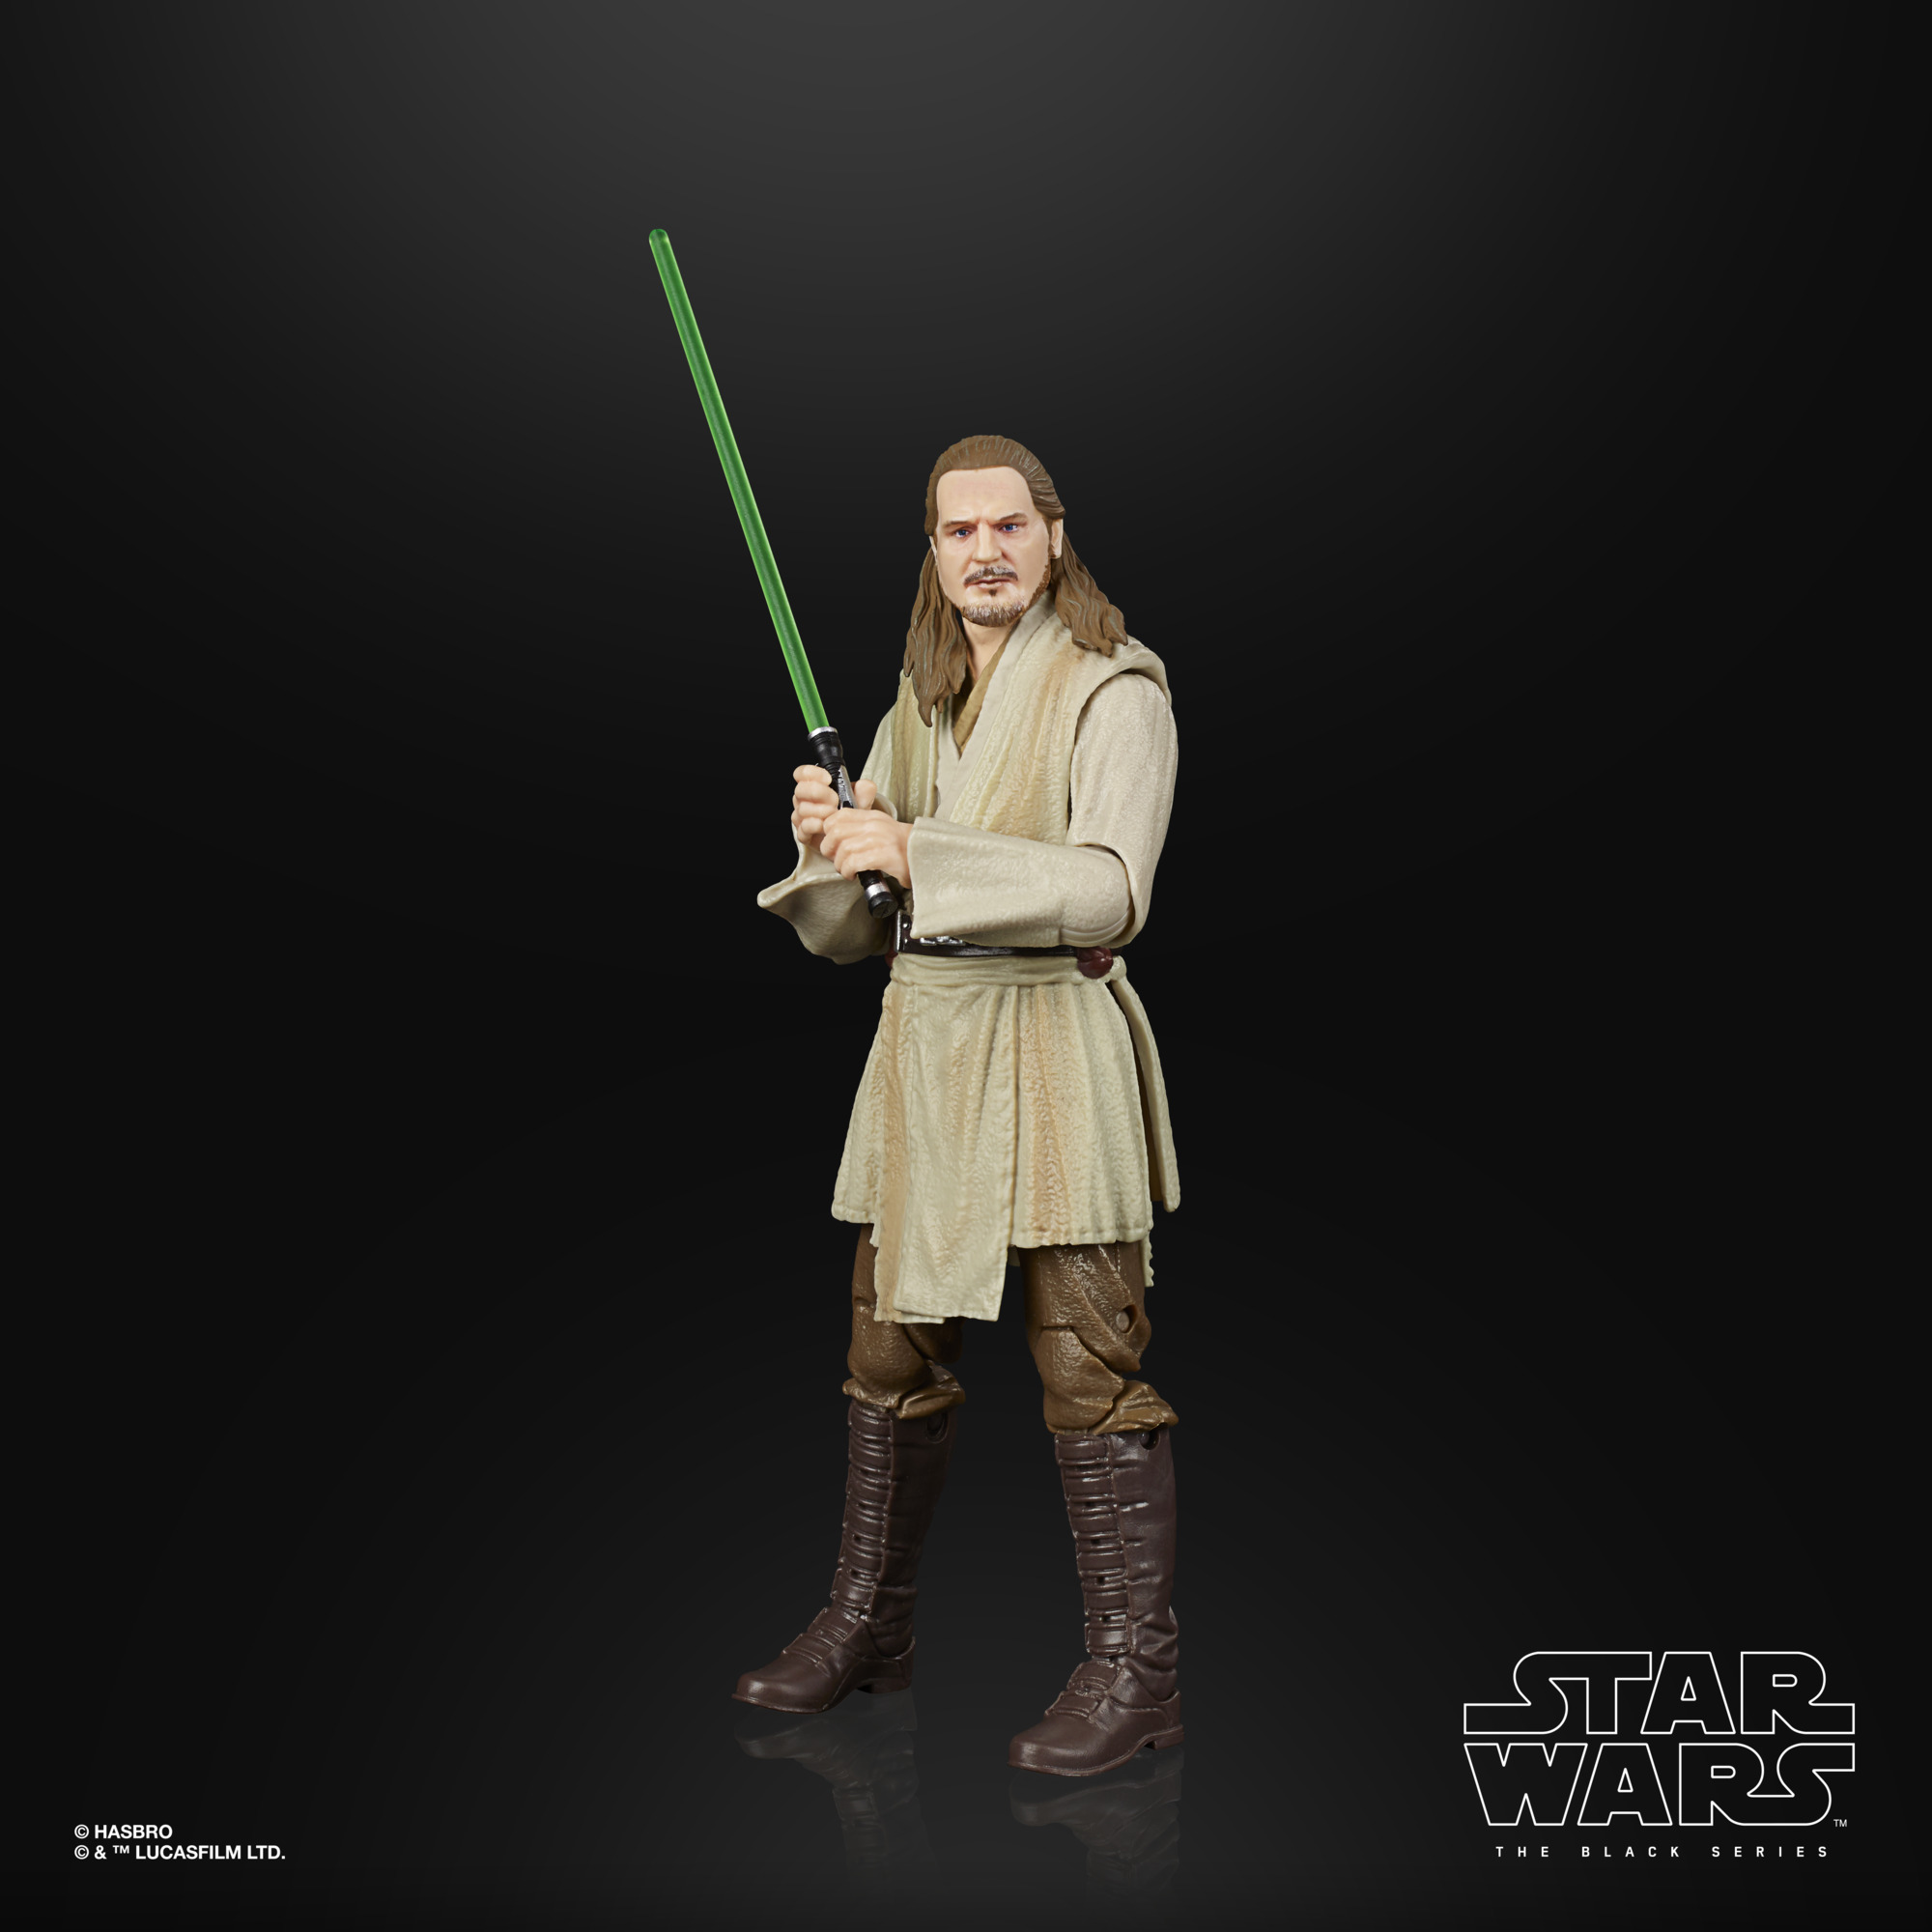 Star Wars The Black Series Qui-Gon Jinn LUCASFILM 50TH ANNIVERSARY FIGURE F27295L00  5010993861415